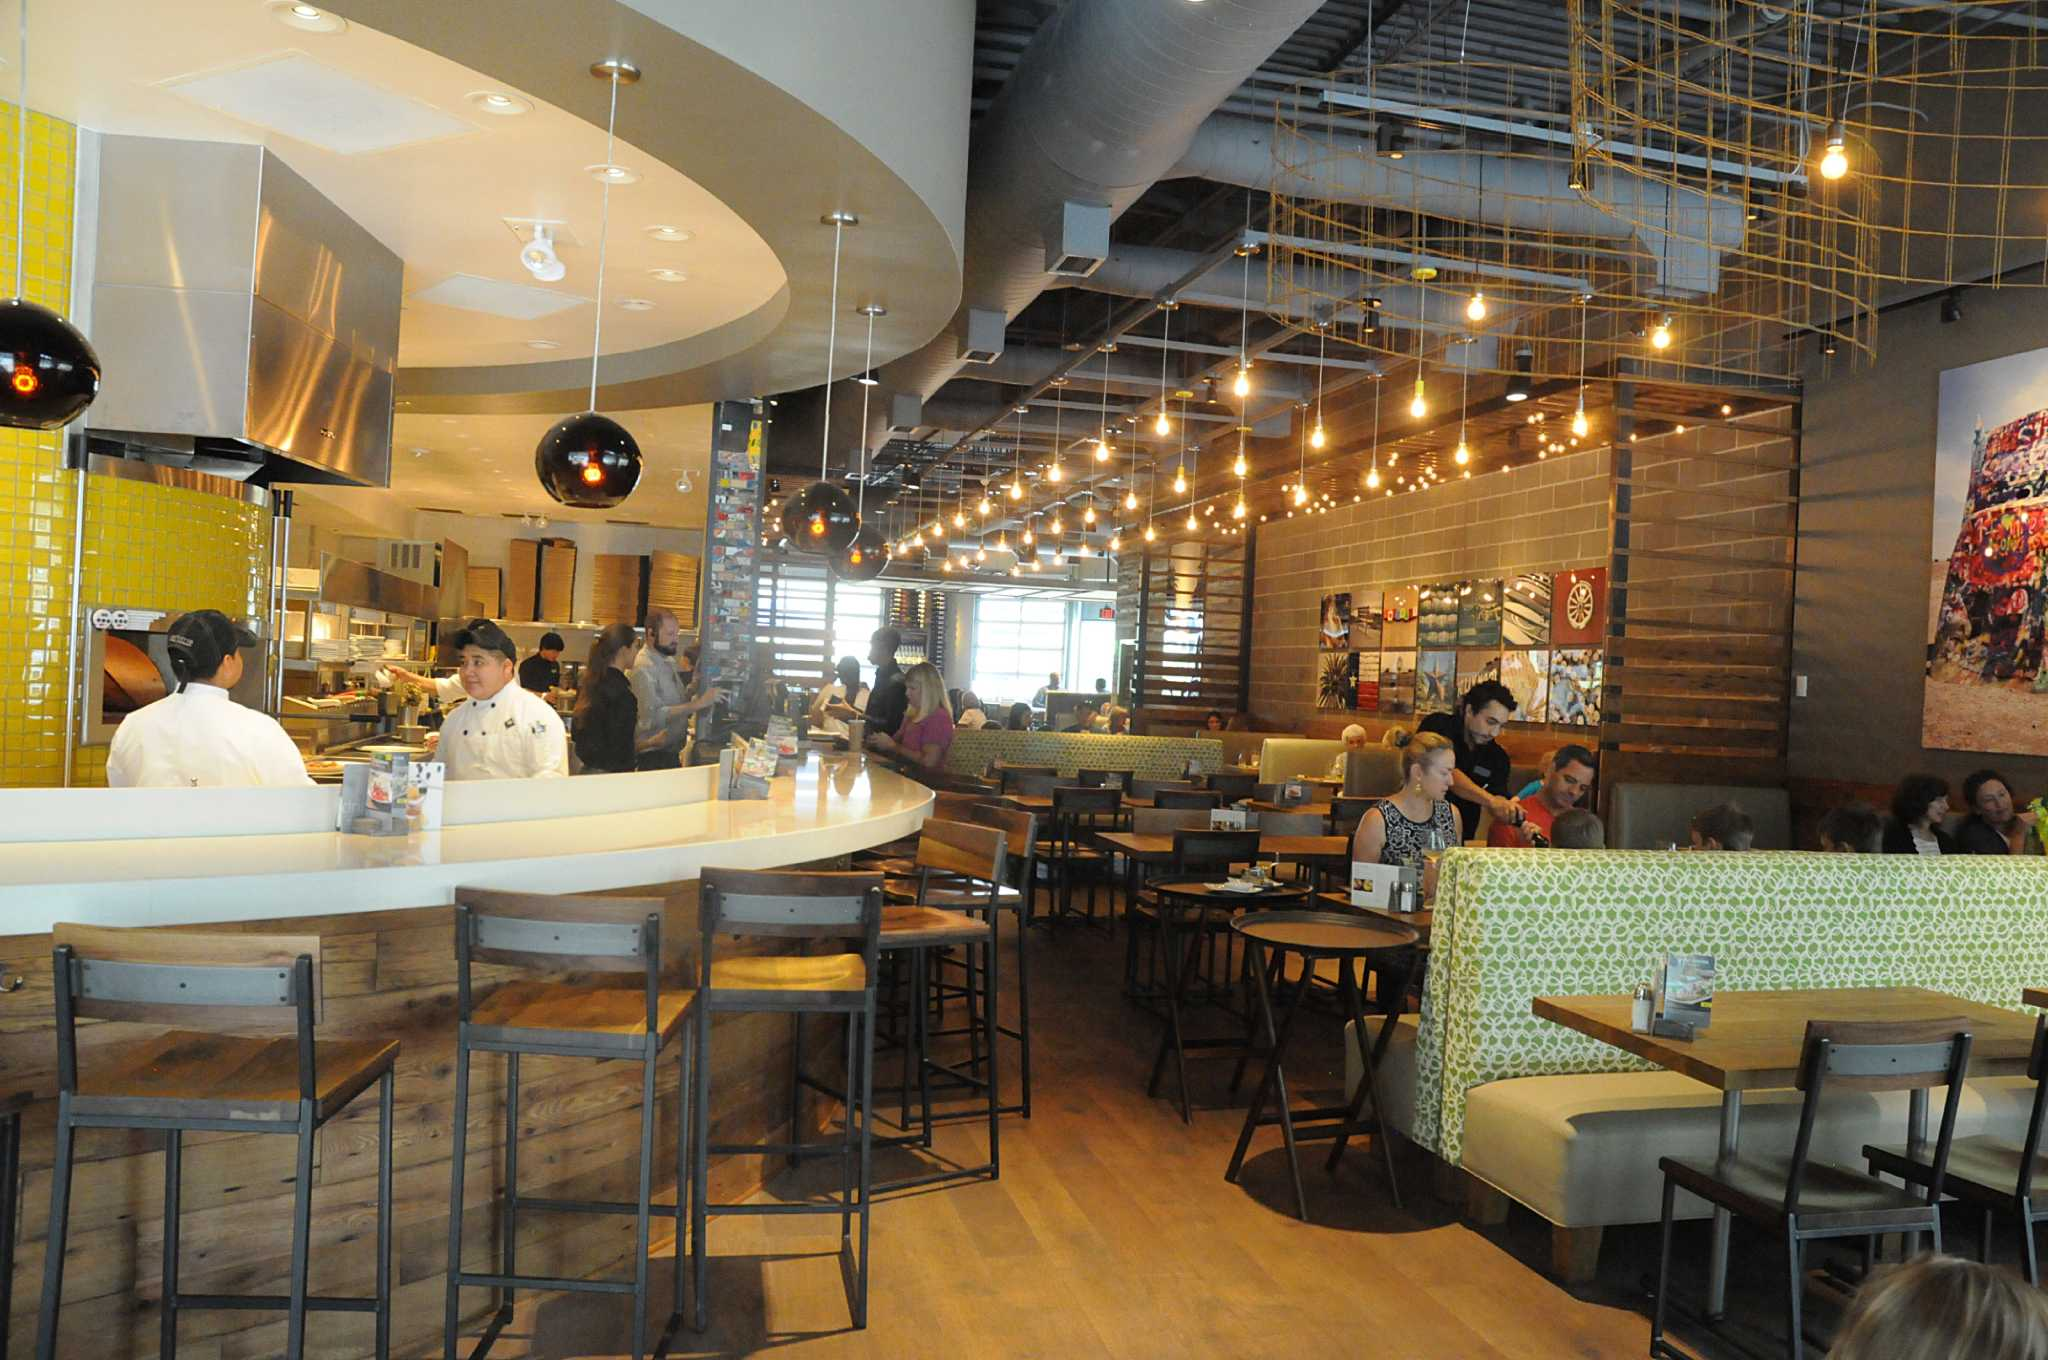 Groovy California Pizza Kitchen Launches New Model In The Woodlands Home Interior And Landscaping Eliaenasavecom